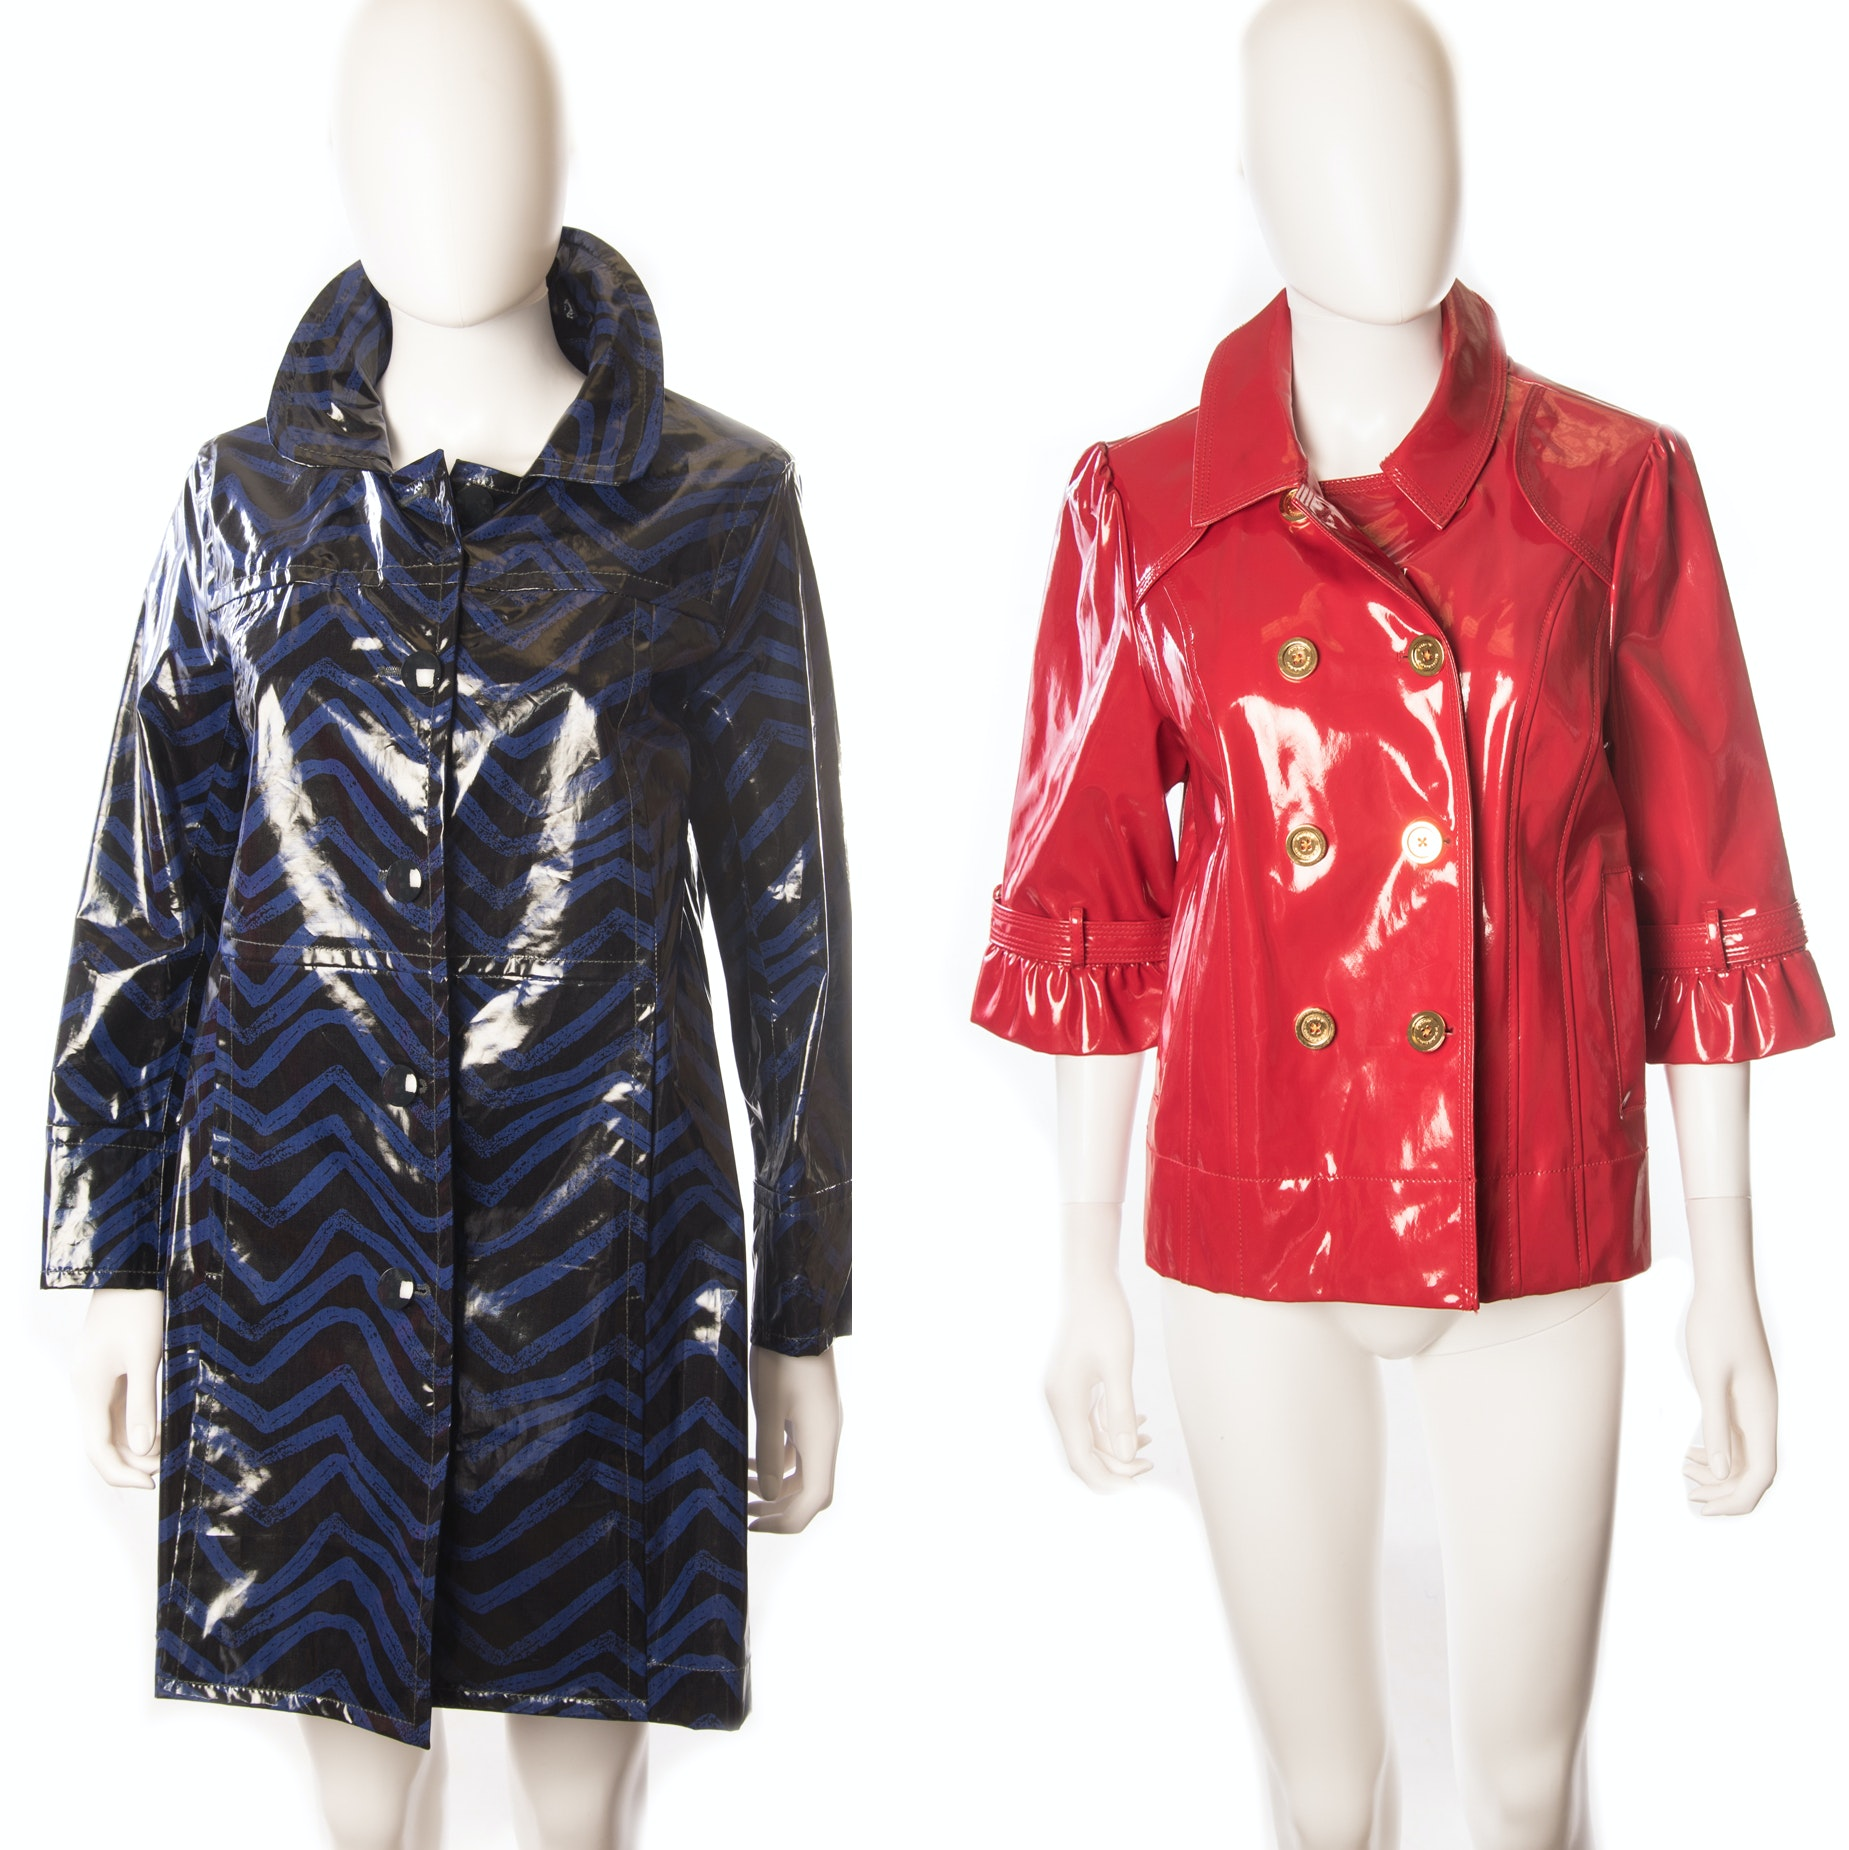 Designer Outerwear featuring Marc by Marc Jacobs and Juicy Couture